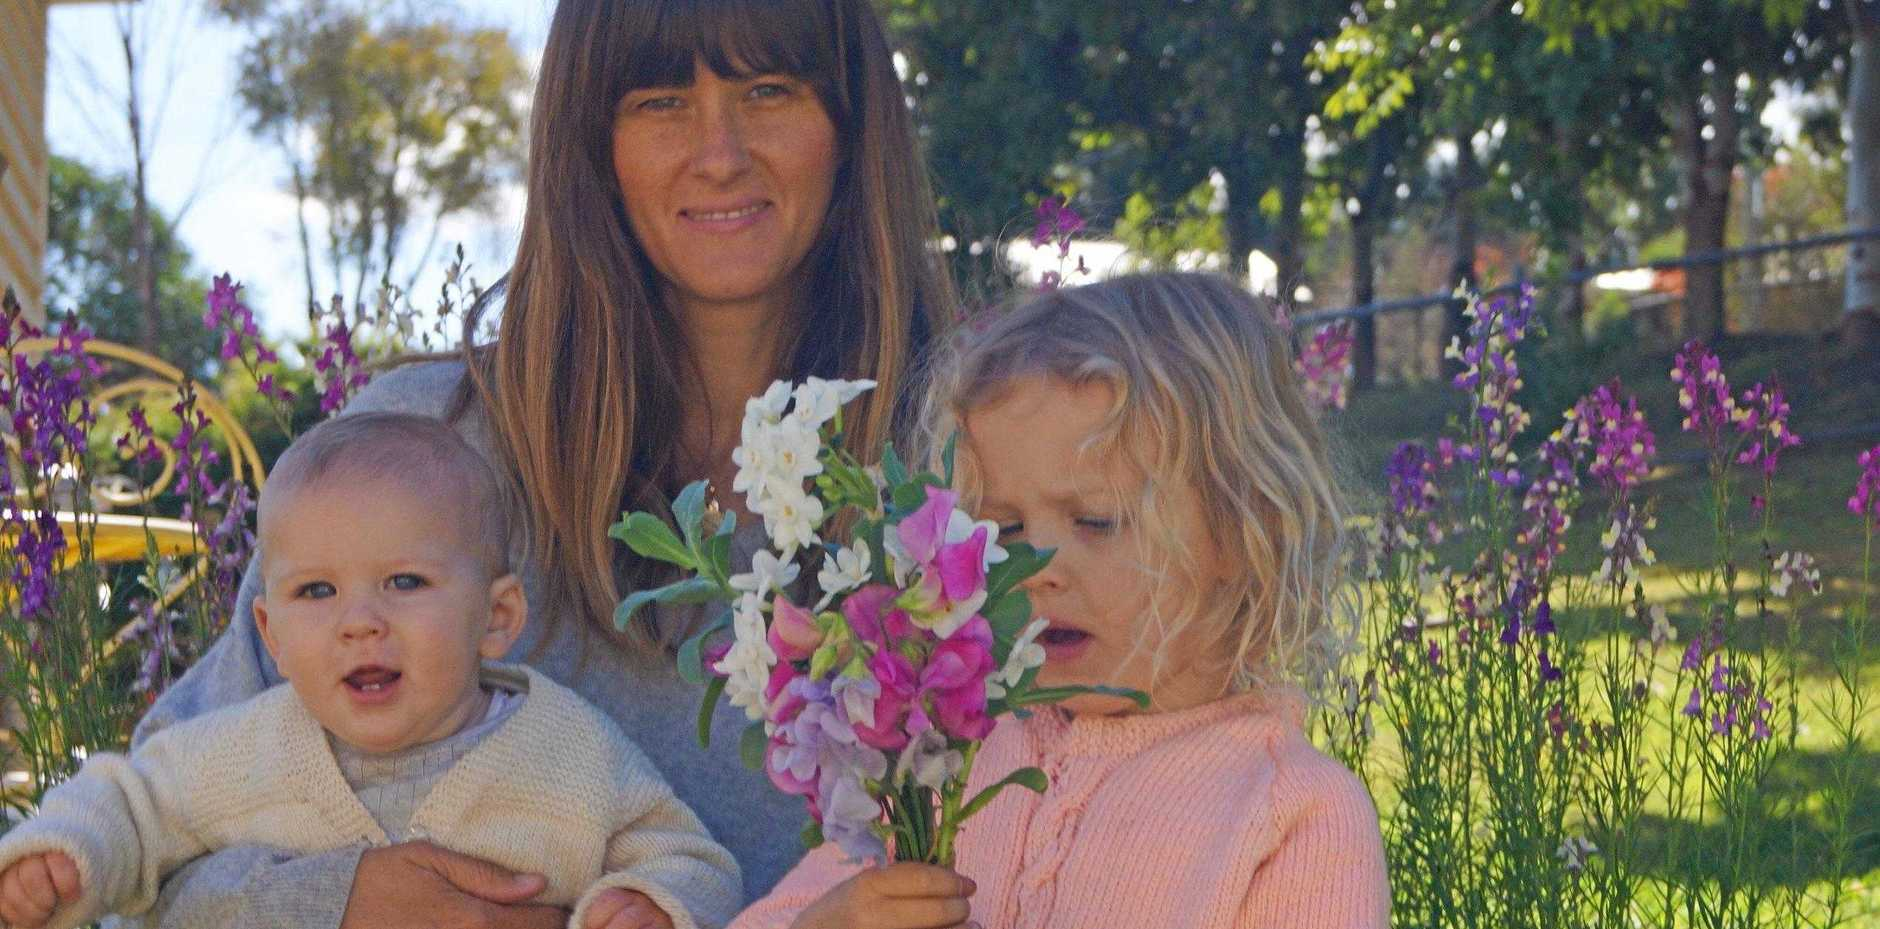 FLORAL FUN: Stacey Gillies is thrilled she is able to share her love of the garden with her young children, Jasper and April.